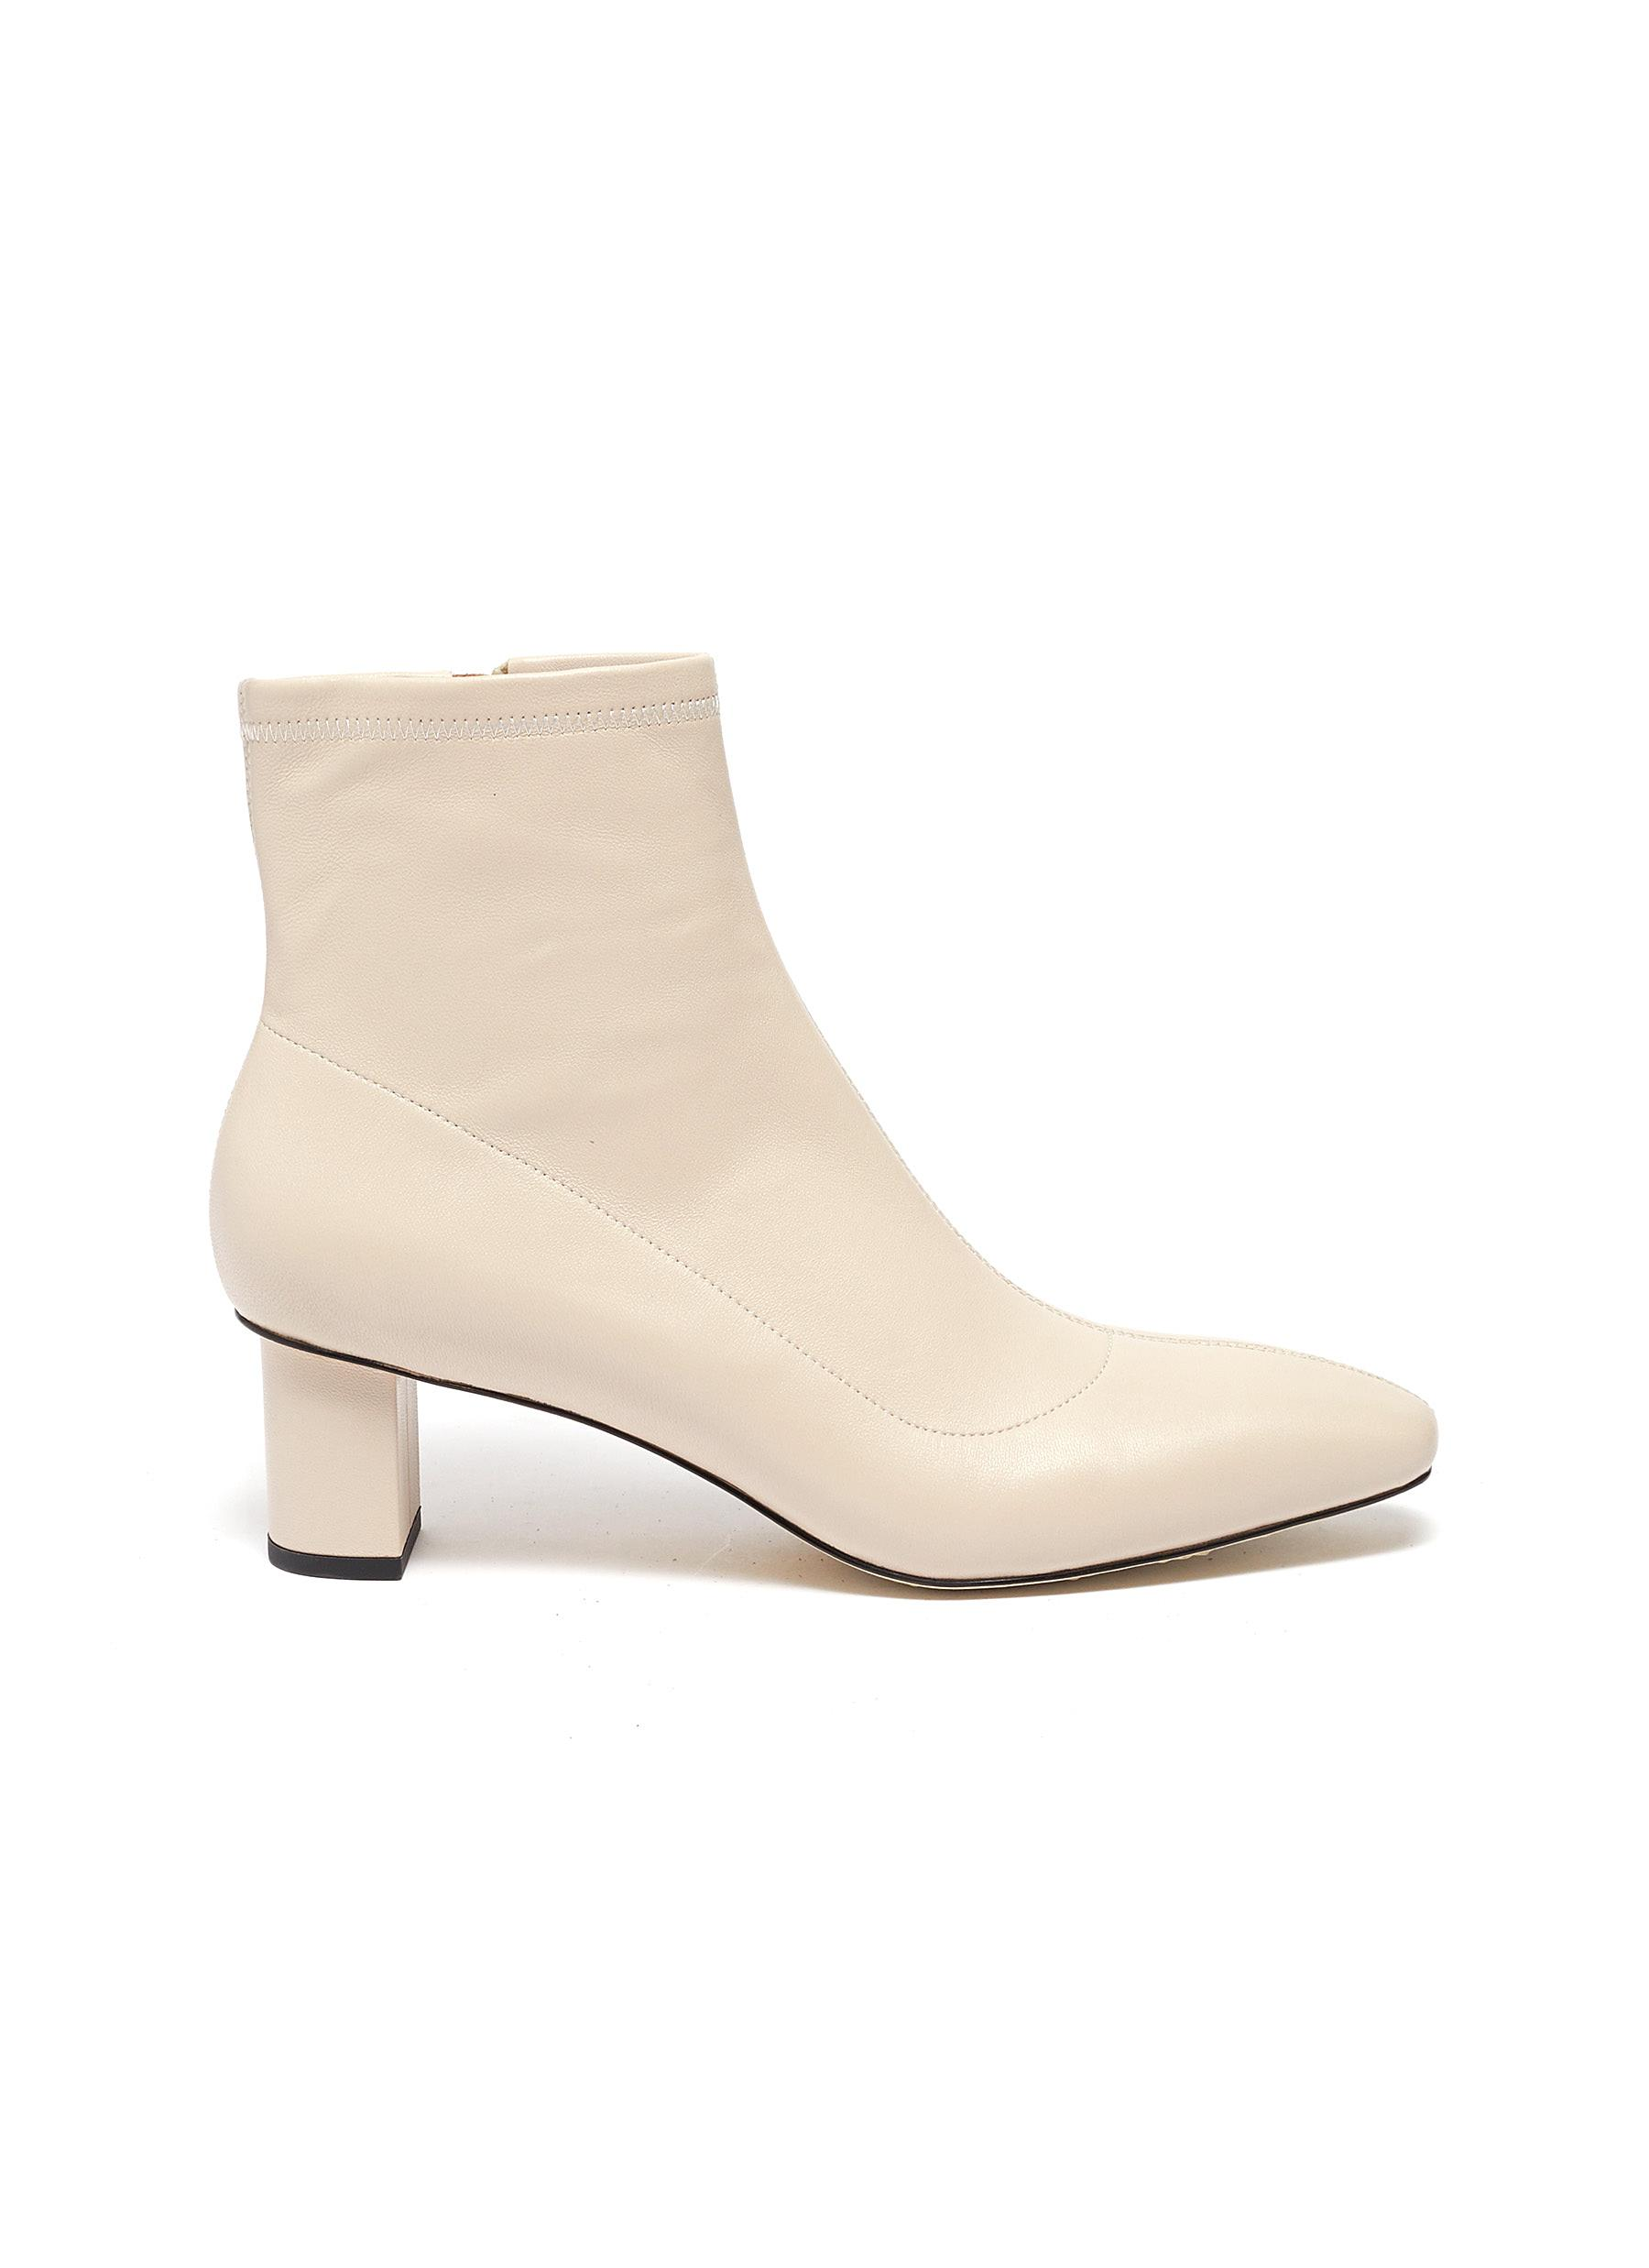 Derrick leather ankle boots by Pedder Red